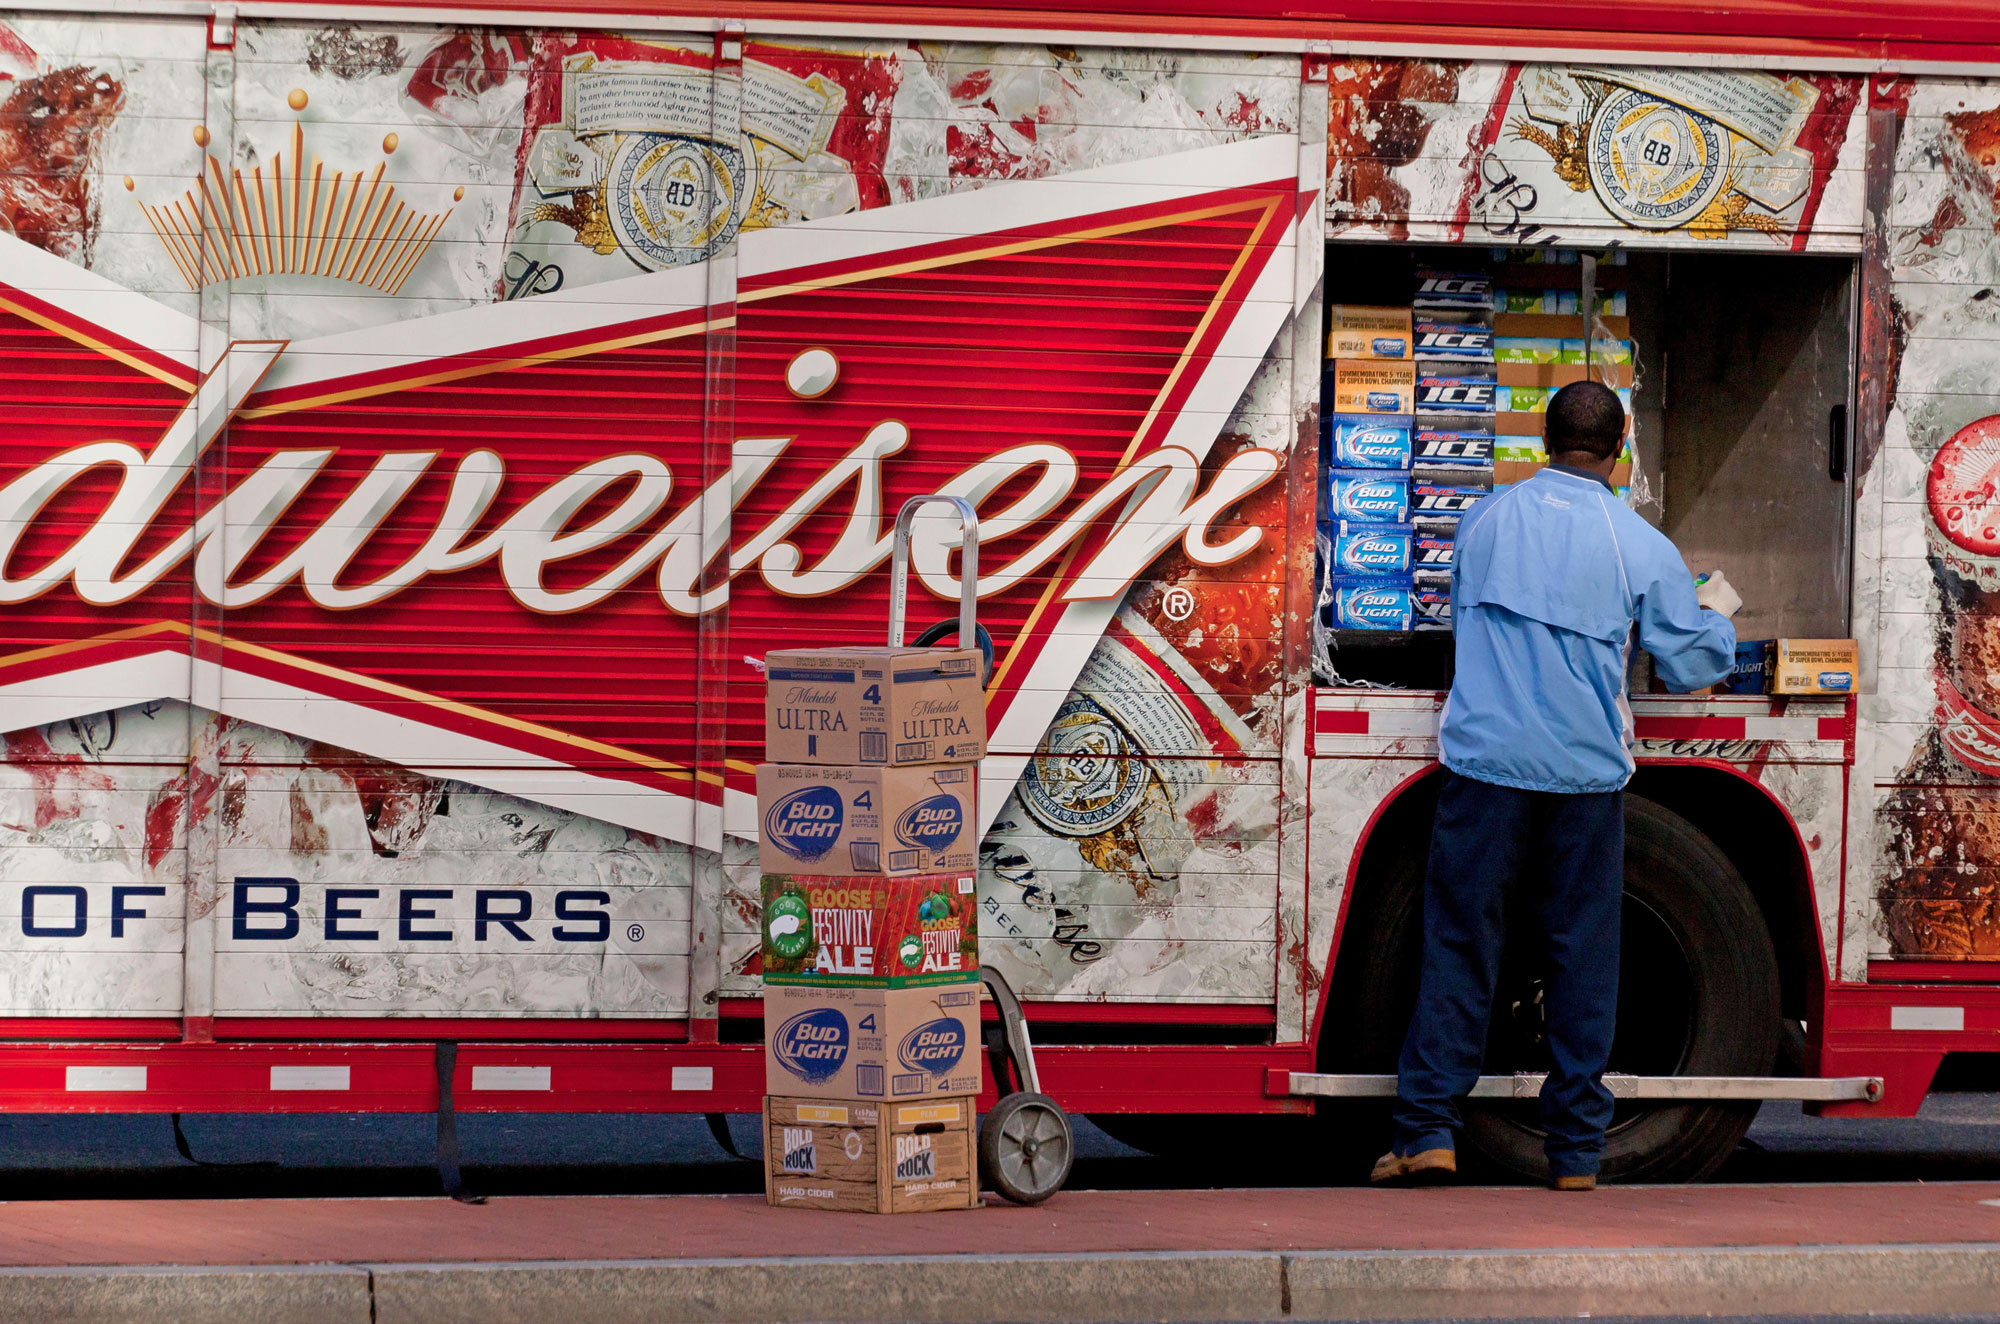 Anheuser-Busch delivery truck